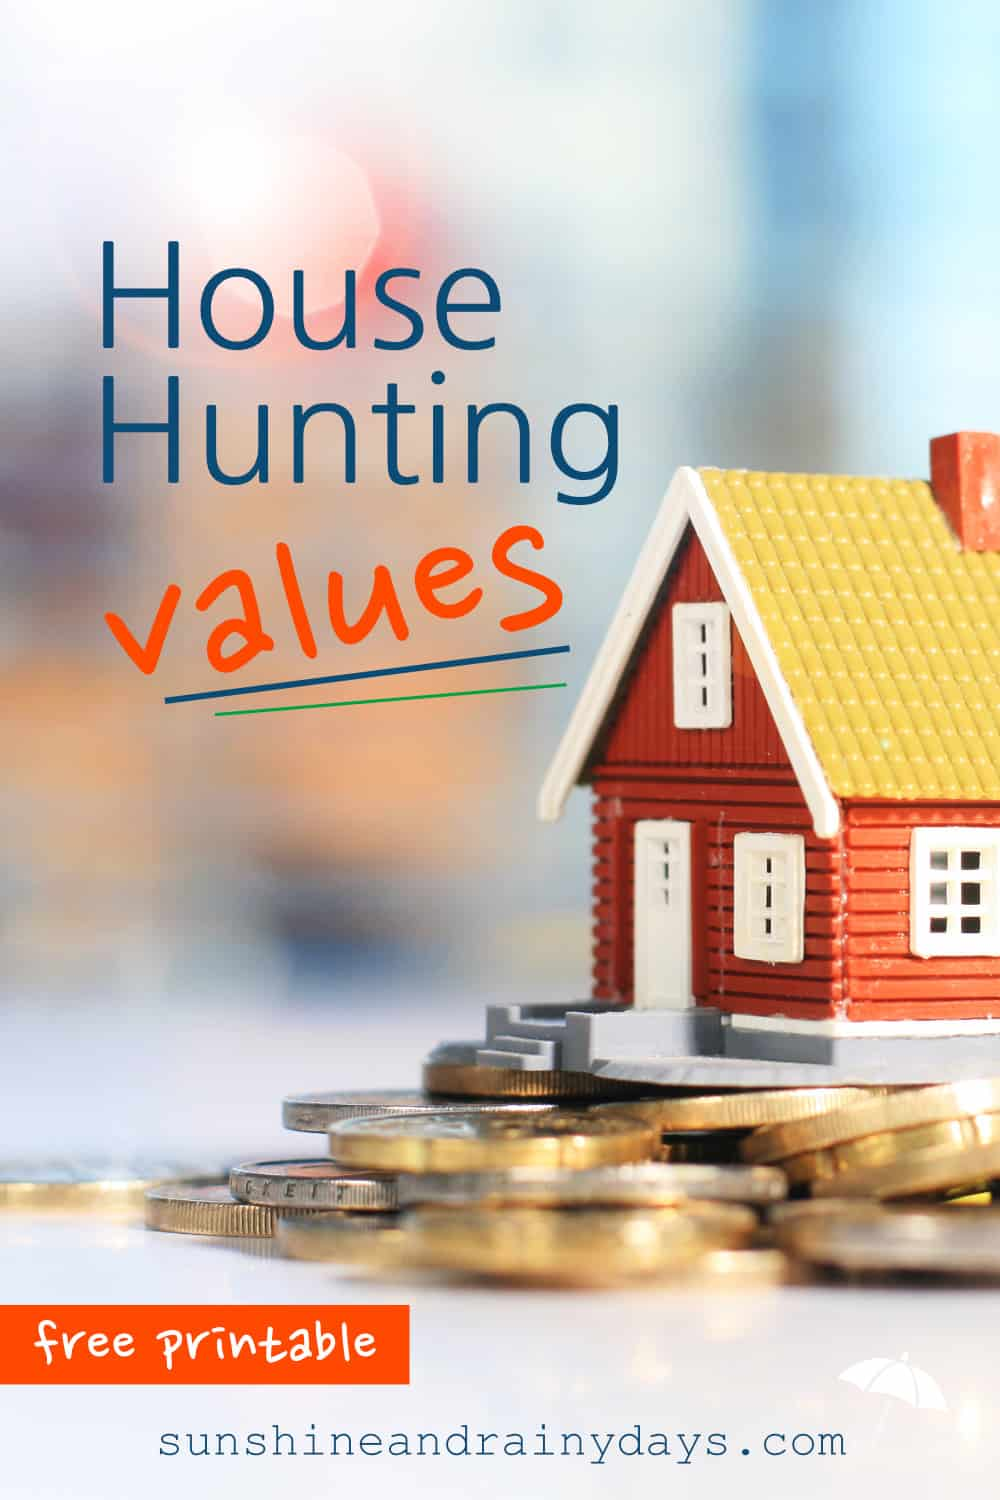 What do you value when house hunting? It's time to bring clarity! Use this printable to discover what you value most, as a family, when house hunting.